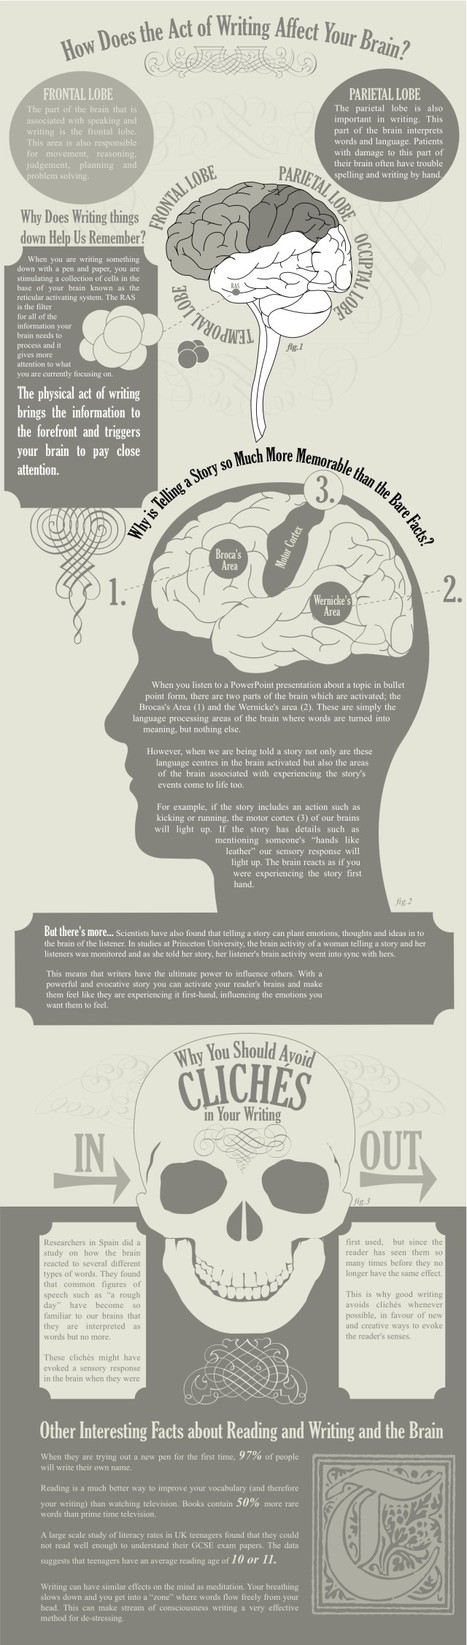 How Does Writing Affect Your Brain? [infographic] | Social Media Resources & e-learning | Scoop.it